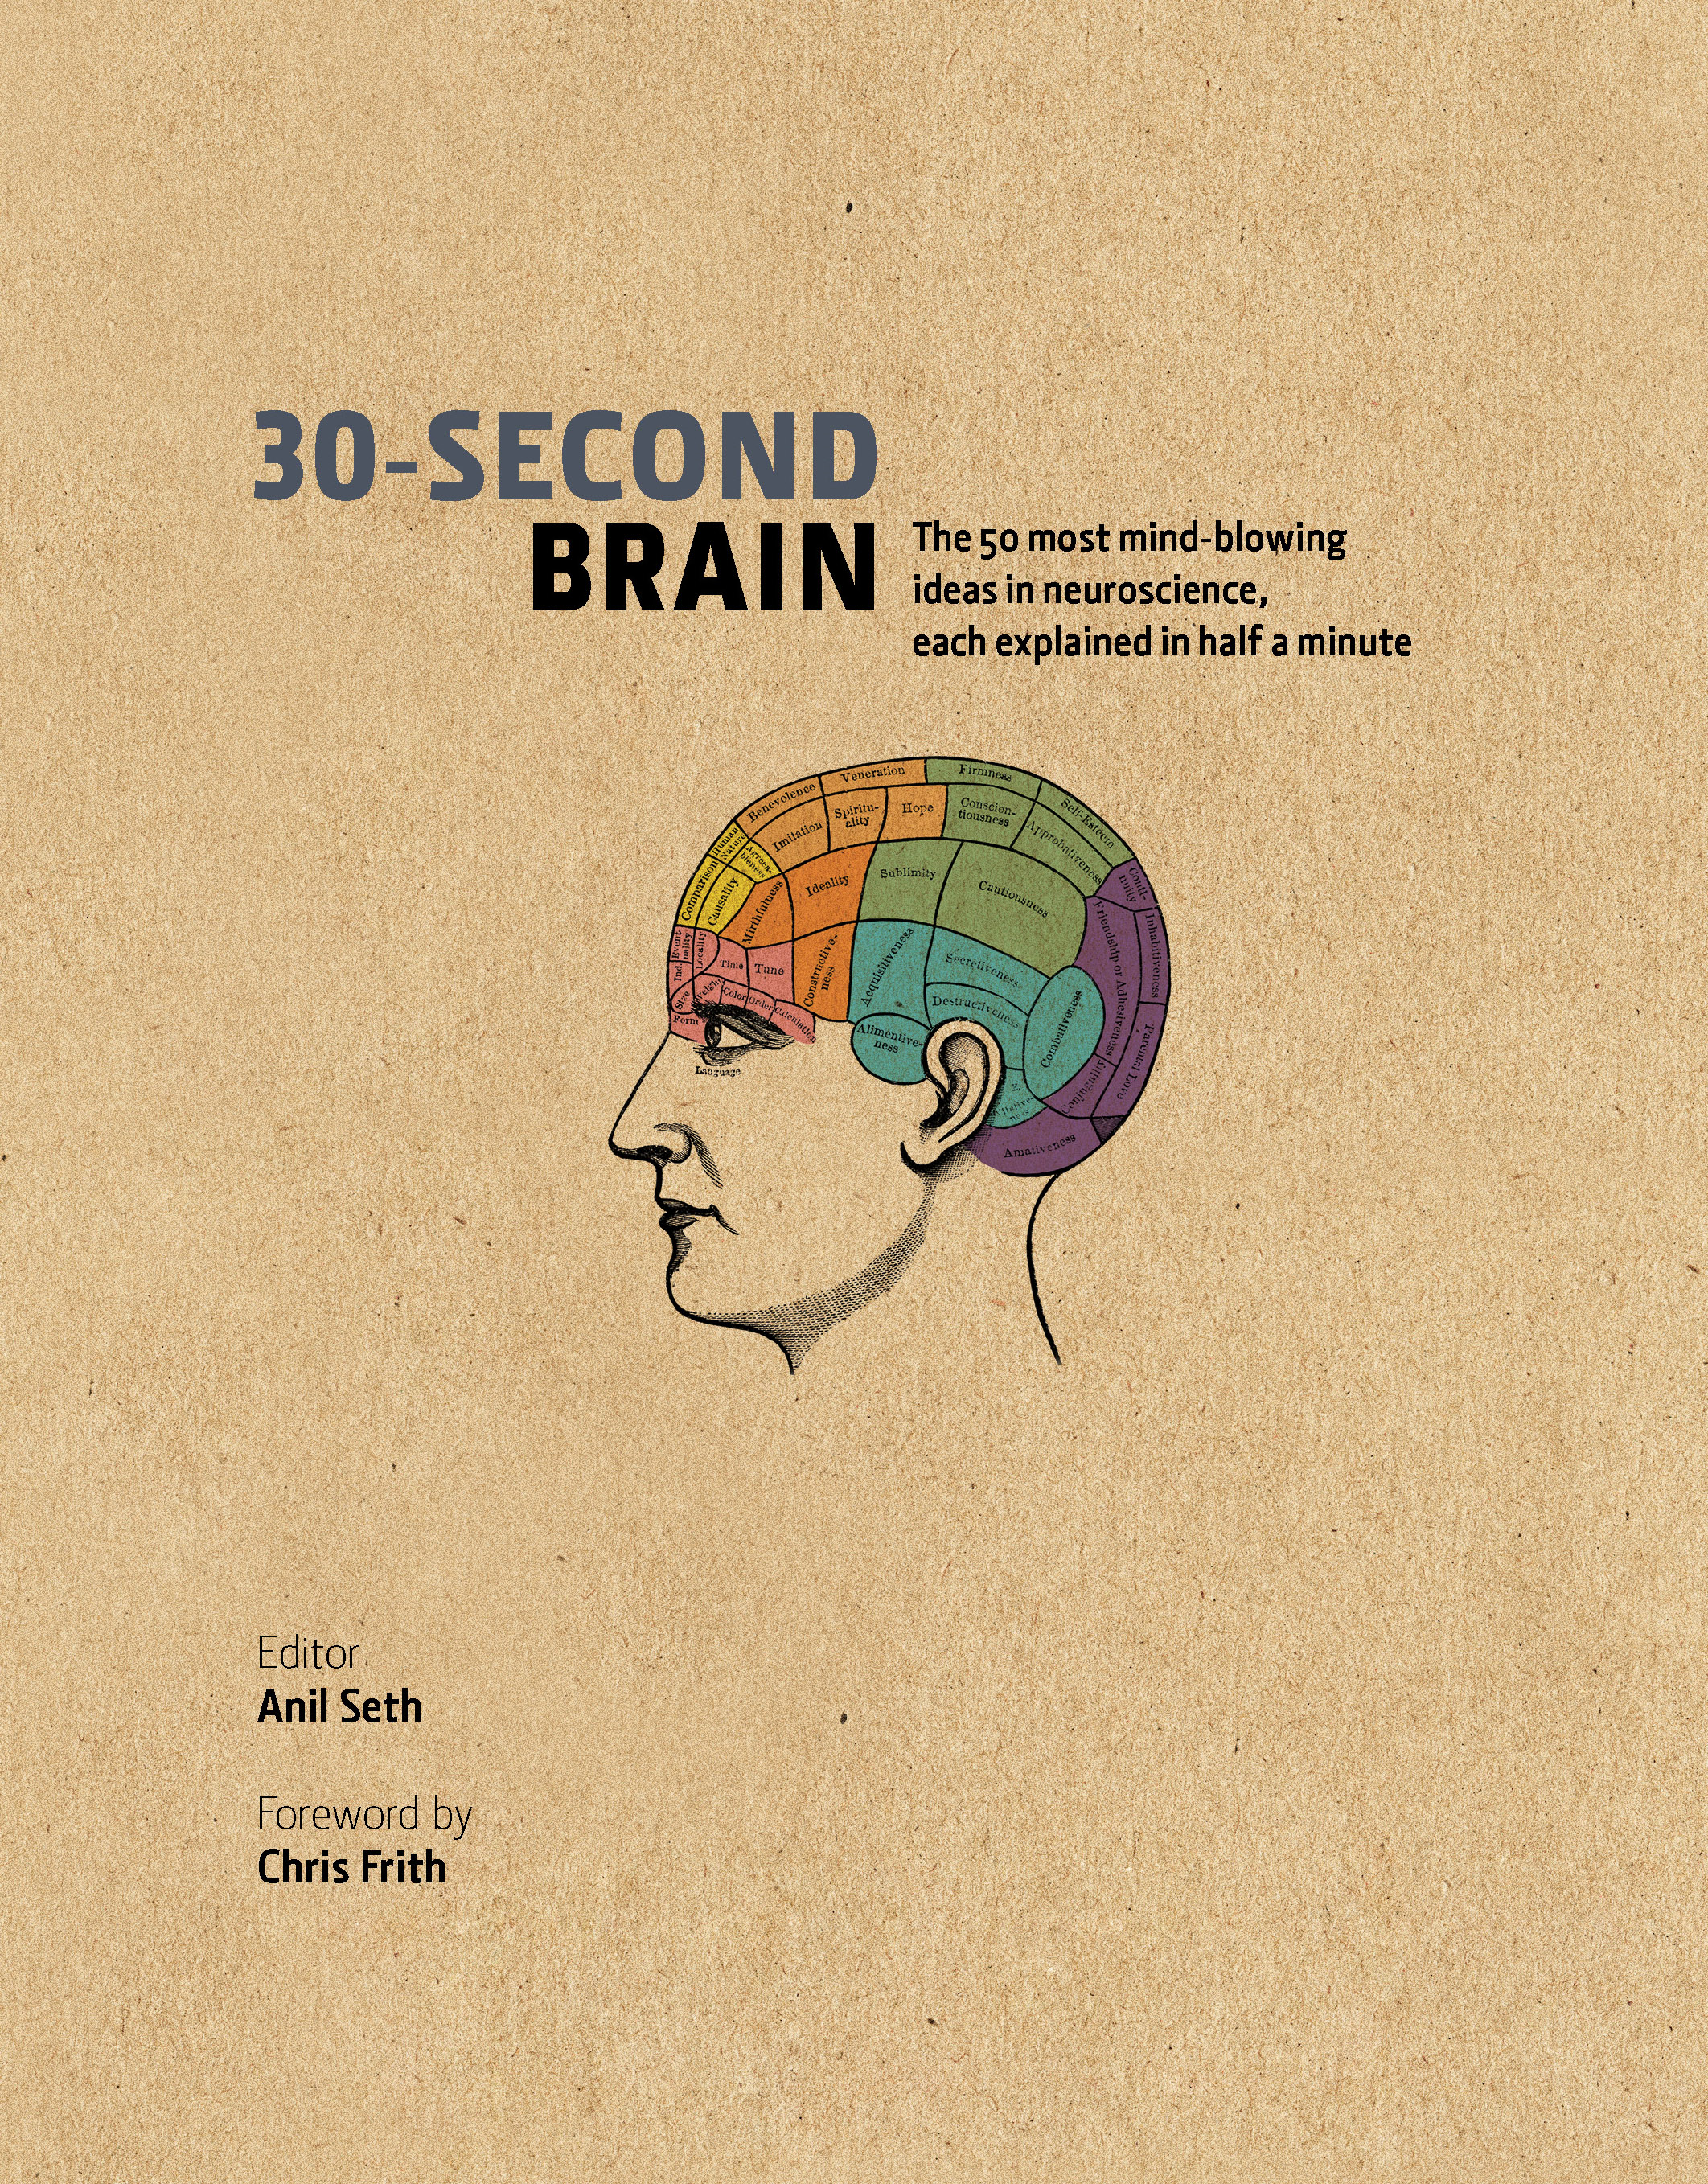 30-Second Brain: The 50 most mindblowing ideas in neuroscience,  each explained in half a minute